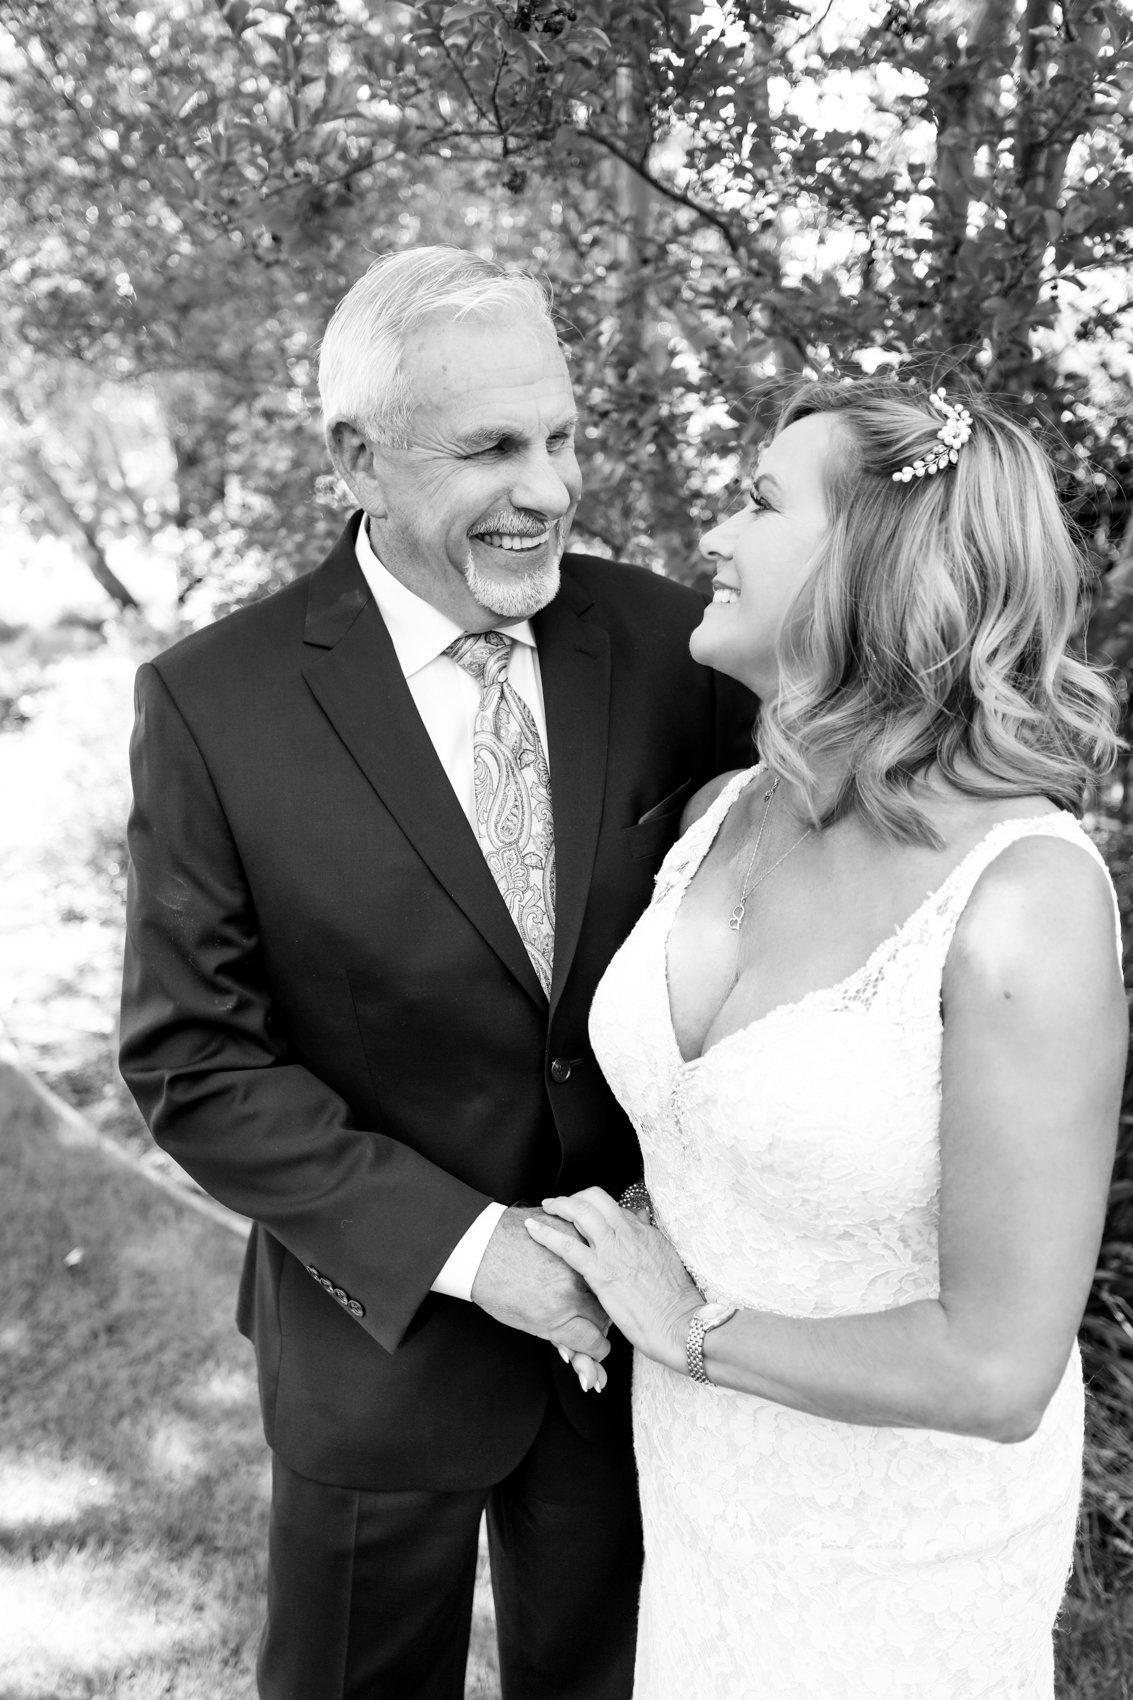 Northern california country club, candid portrait of bride and groom